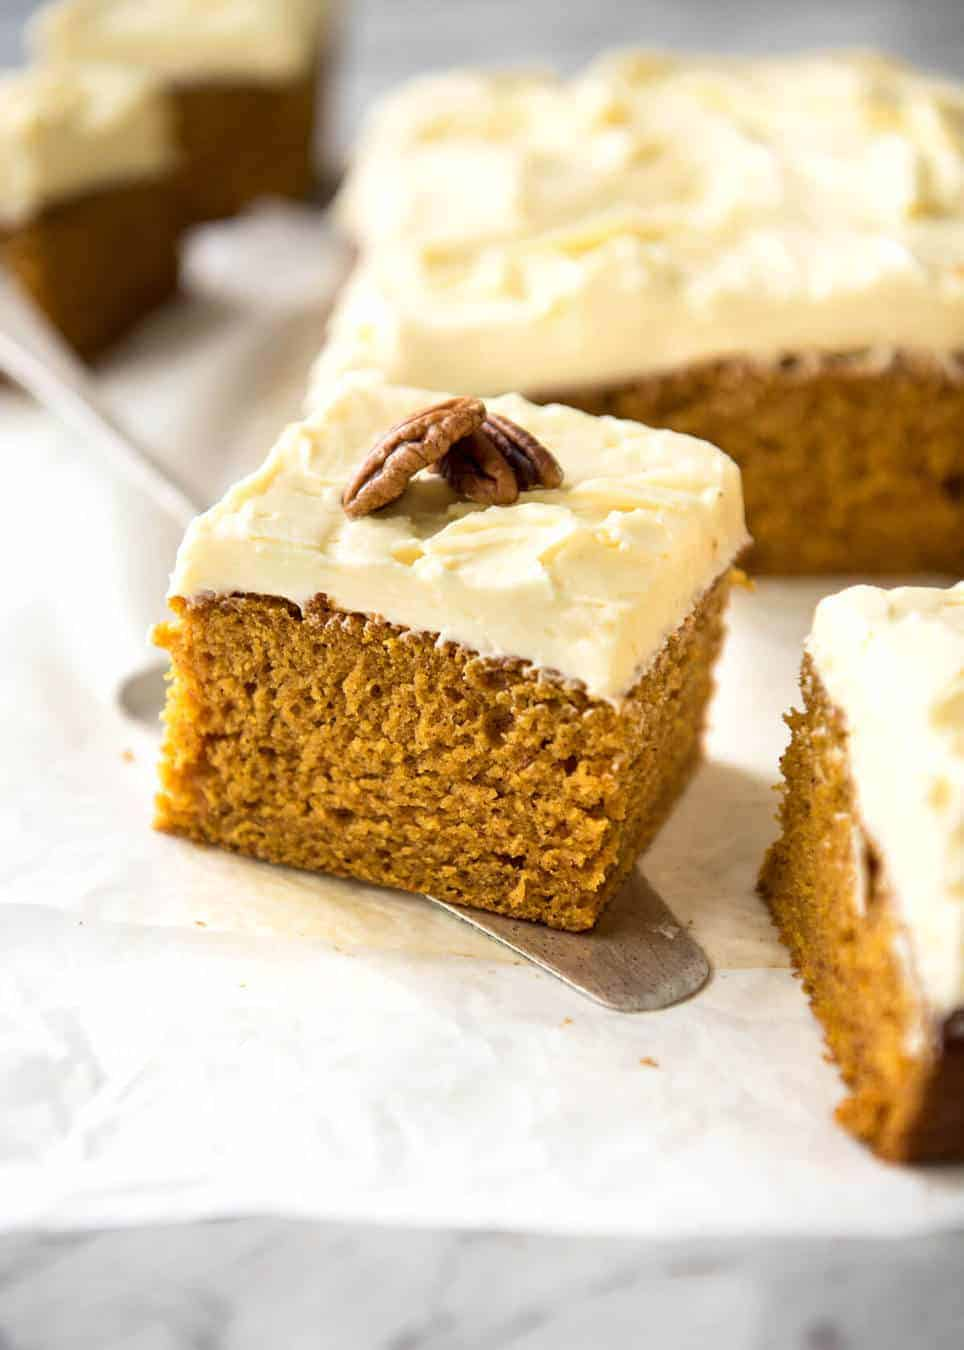 How To Make Cream Cheese Frosting For Pumpkin Cake